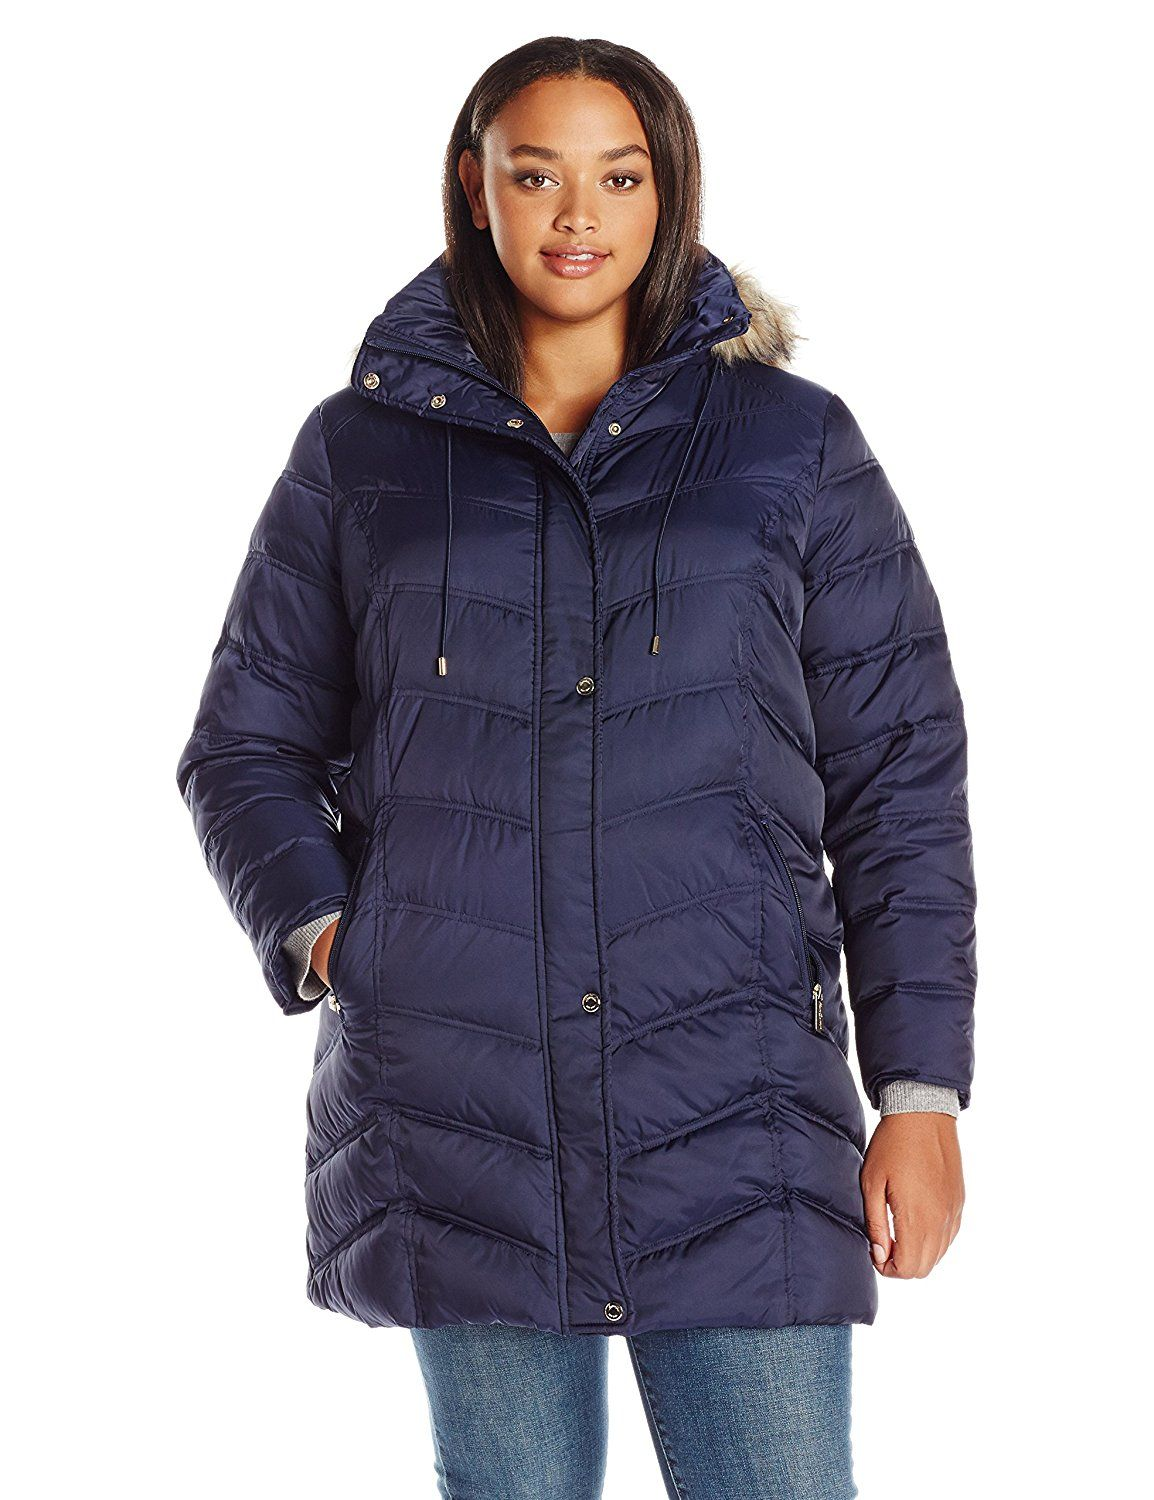 Kenneth Cole Women's Plus Size New York Chevron Down Coat with ... : kenneth cole chevron quilted coat - Adamdwight.com